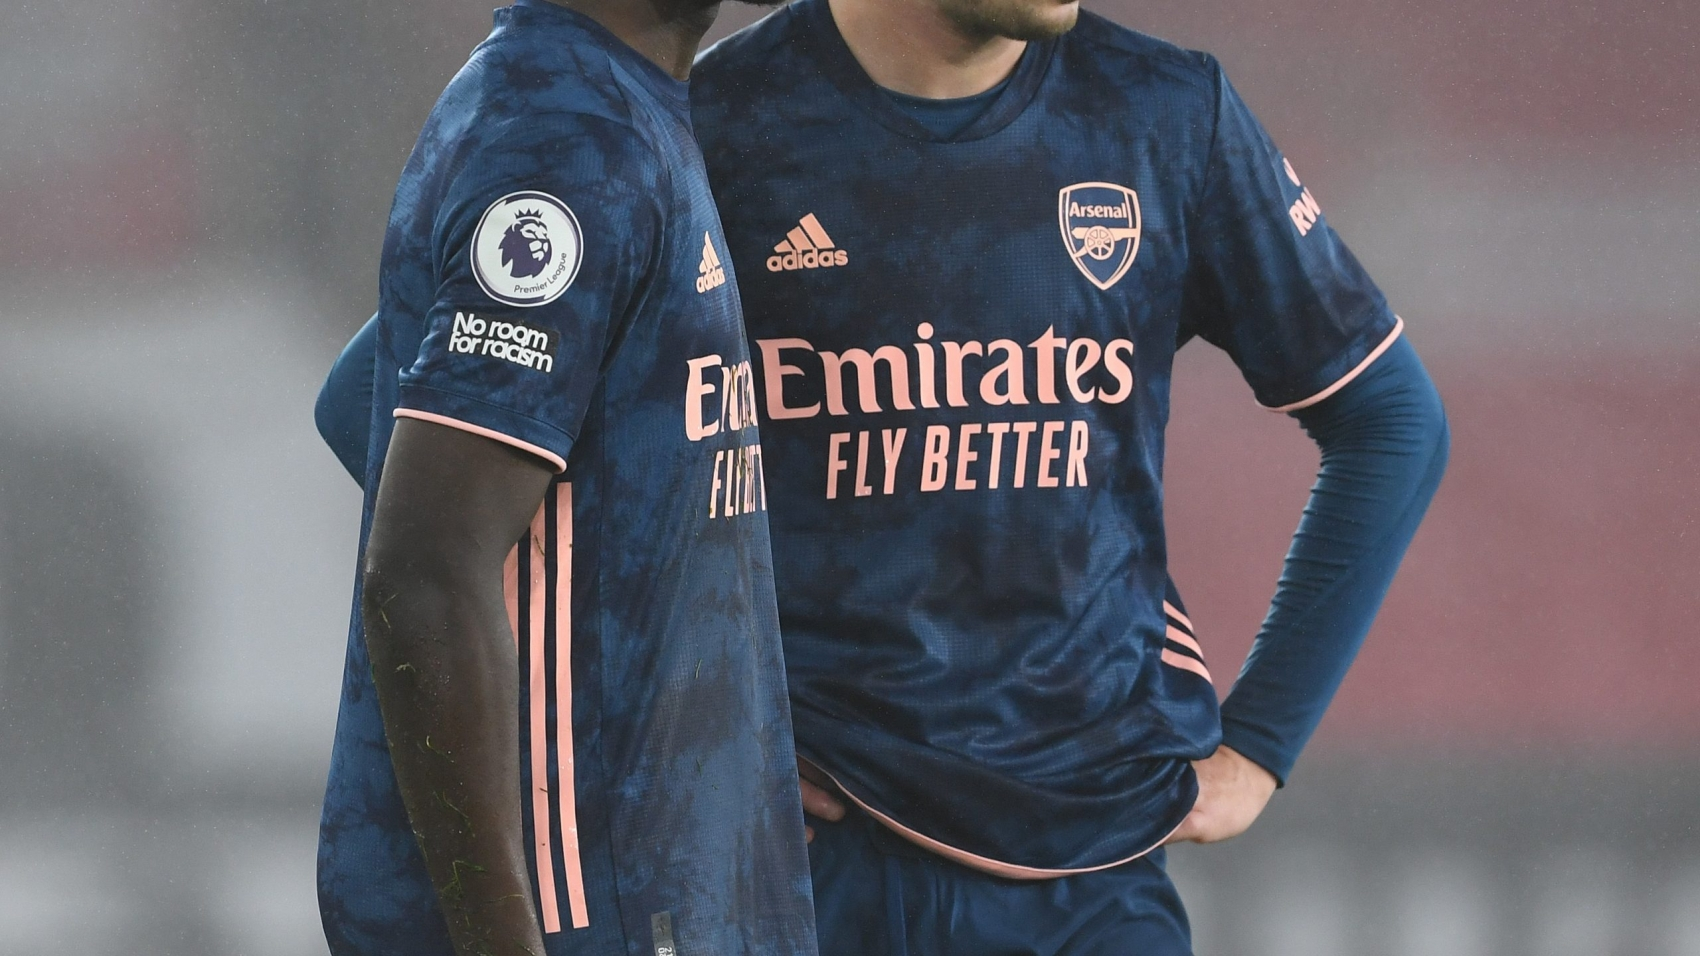 SOUTHAMPTON, ENGLAND - JANUARY 26: (L-R) Bukayo Saka and Emile Smith Rowe of Arsenal during the Premier League match between Southampton and Arsenal at St Mary's Stadium on January 26, 2021 in Southampton, England. Sporting stadiums around the UK remain under strict restrictions due to the Coronavirus Pandemic as Government social distancing laws prohibit fans inside venues resulting in games being played behind closed doors. (Photo by Stuart MacFarlane/Arsenal FC via Getty Images)